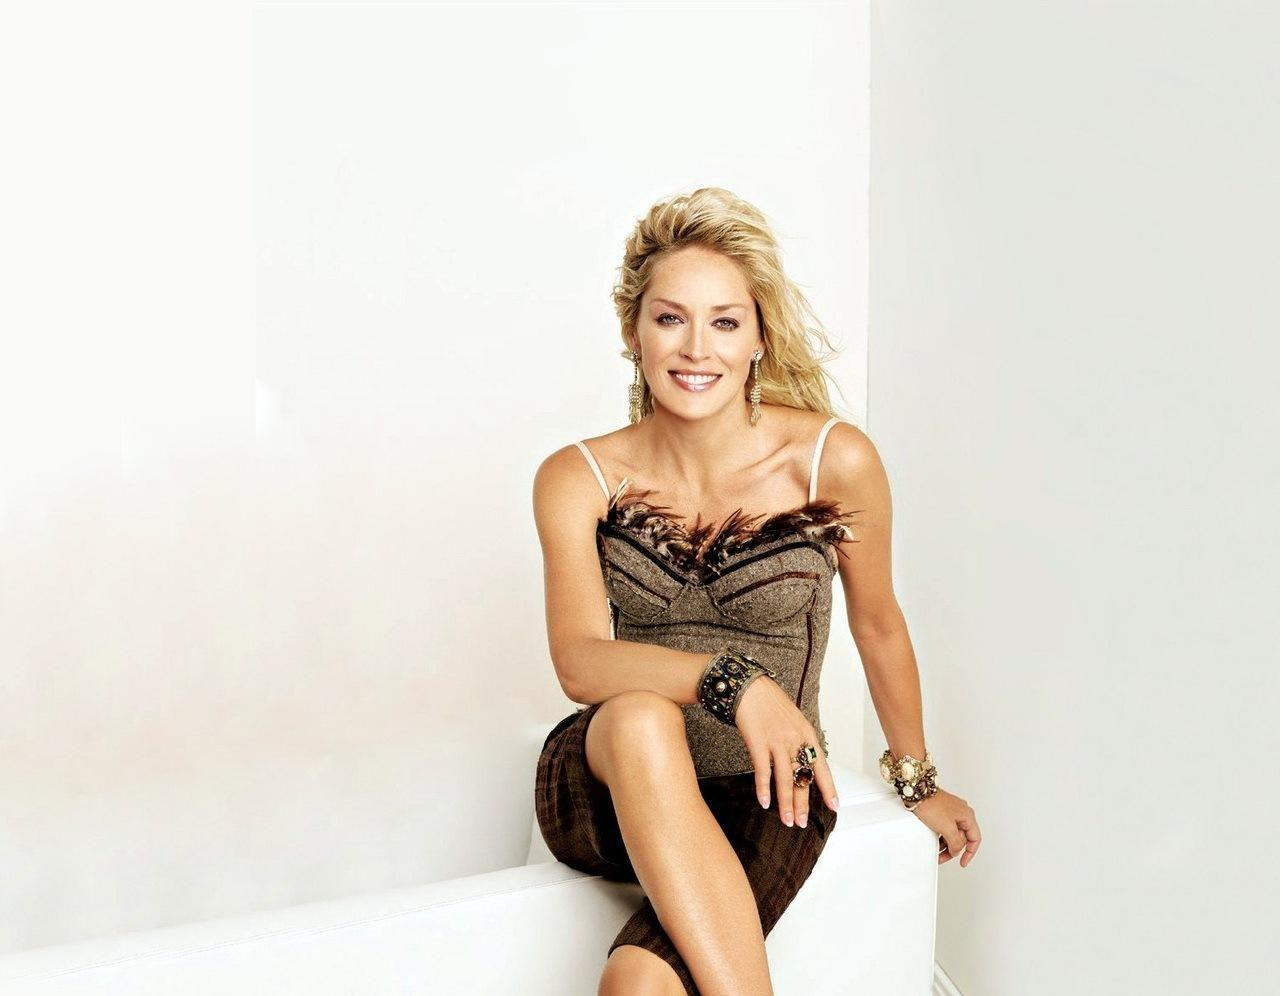 Sharon stone sexy and hot picture wallpapers